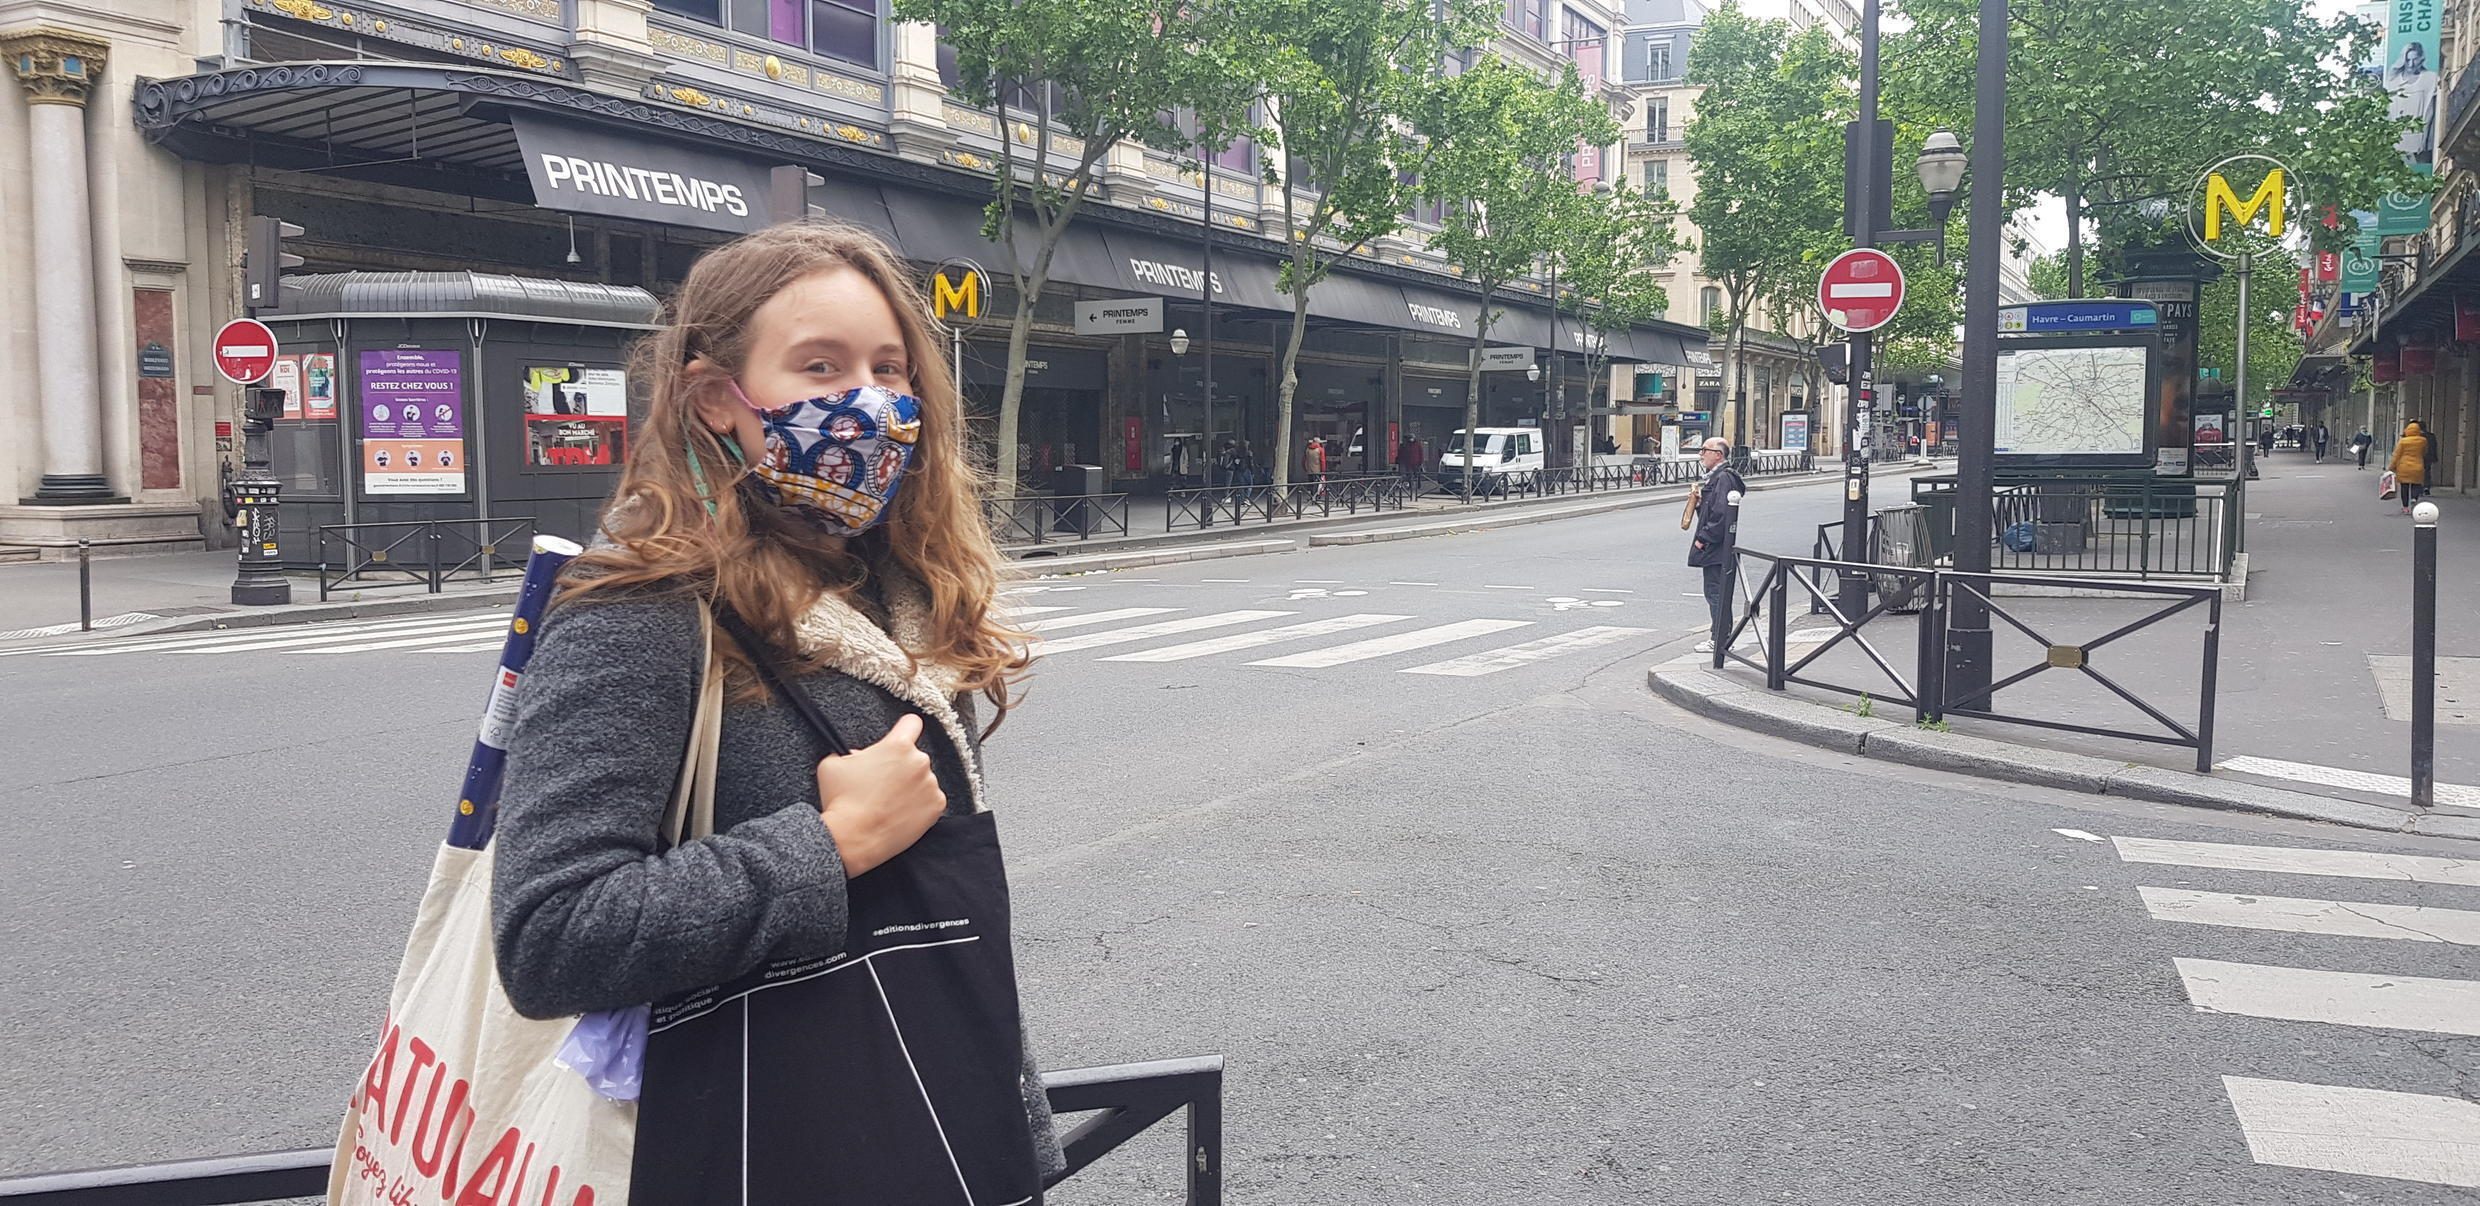 Zoé, in a handmade mask, is desperately looking for a birthday gift for her boyfriend as she scans the shops along a deserted Boulevard Haussmann.